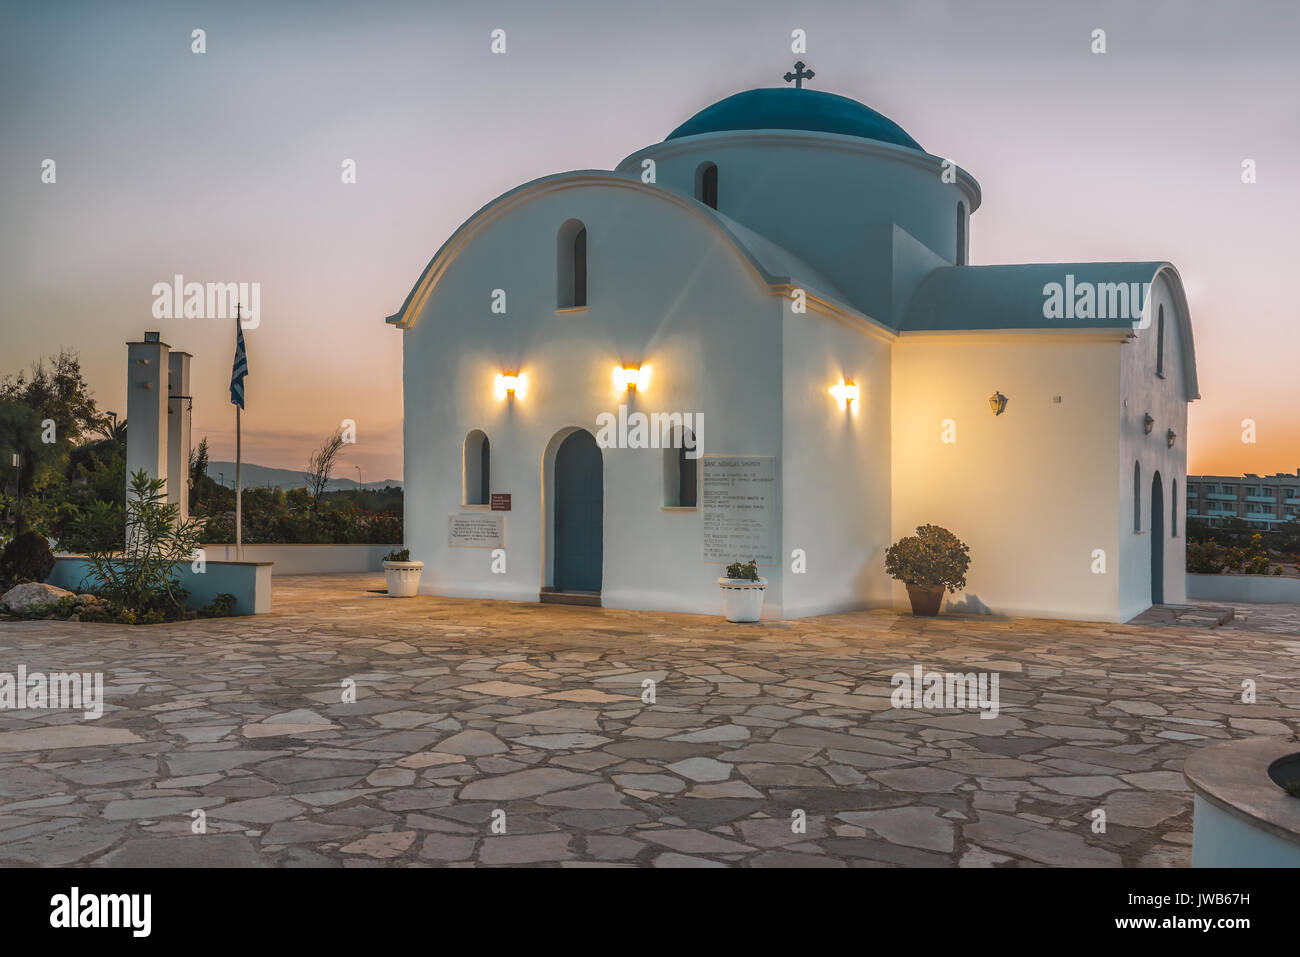 A small white church on the beach in Paphos, Cyprus during the dawn. The sun rises above the horizon and illuminates the church. - Stock Image